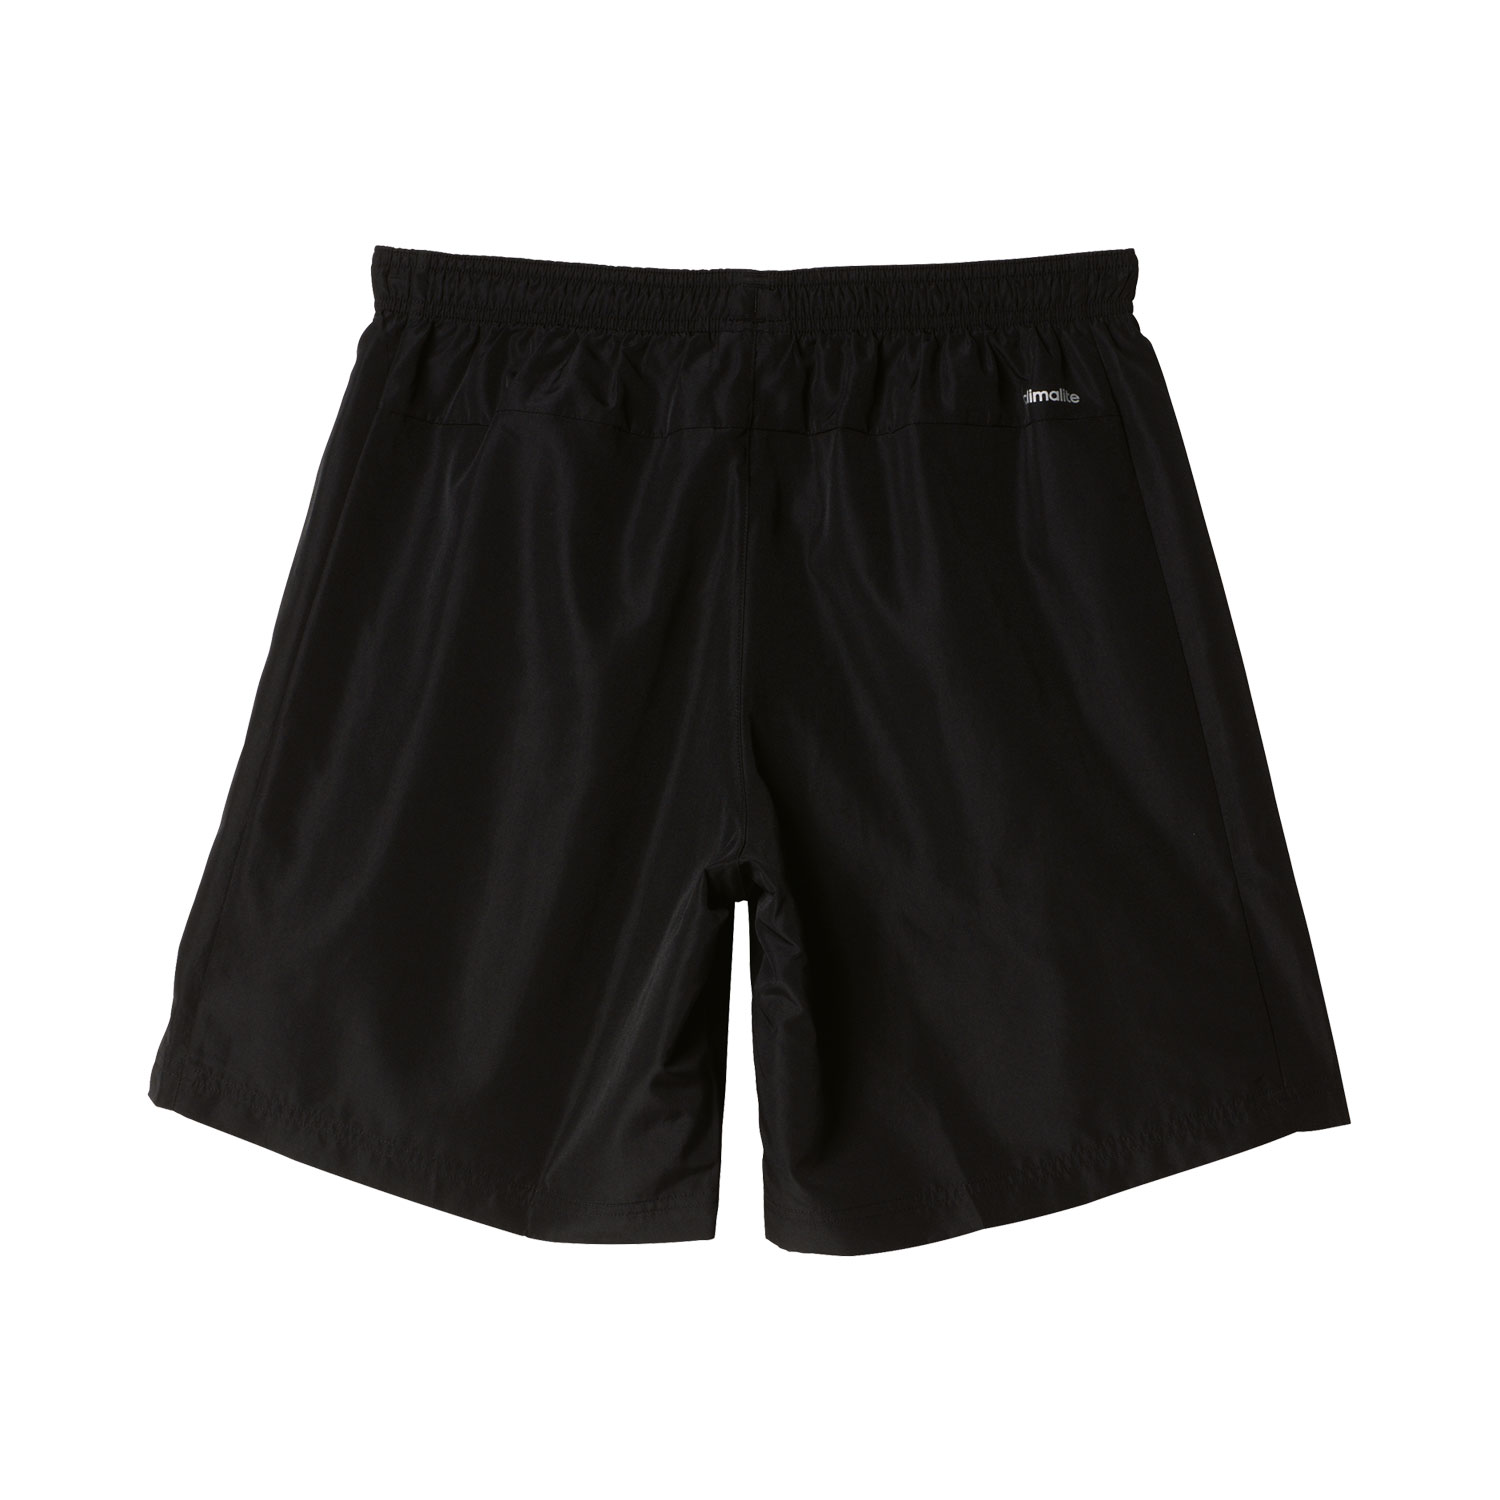 adidas Base Plain Short Woven Herren Trainingsshort – Bild 2